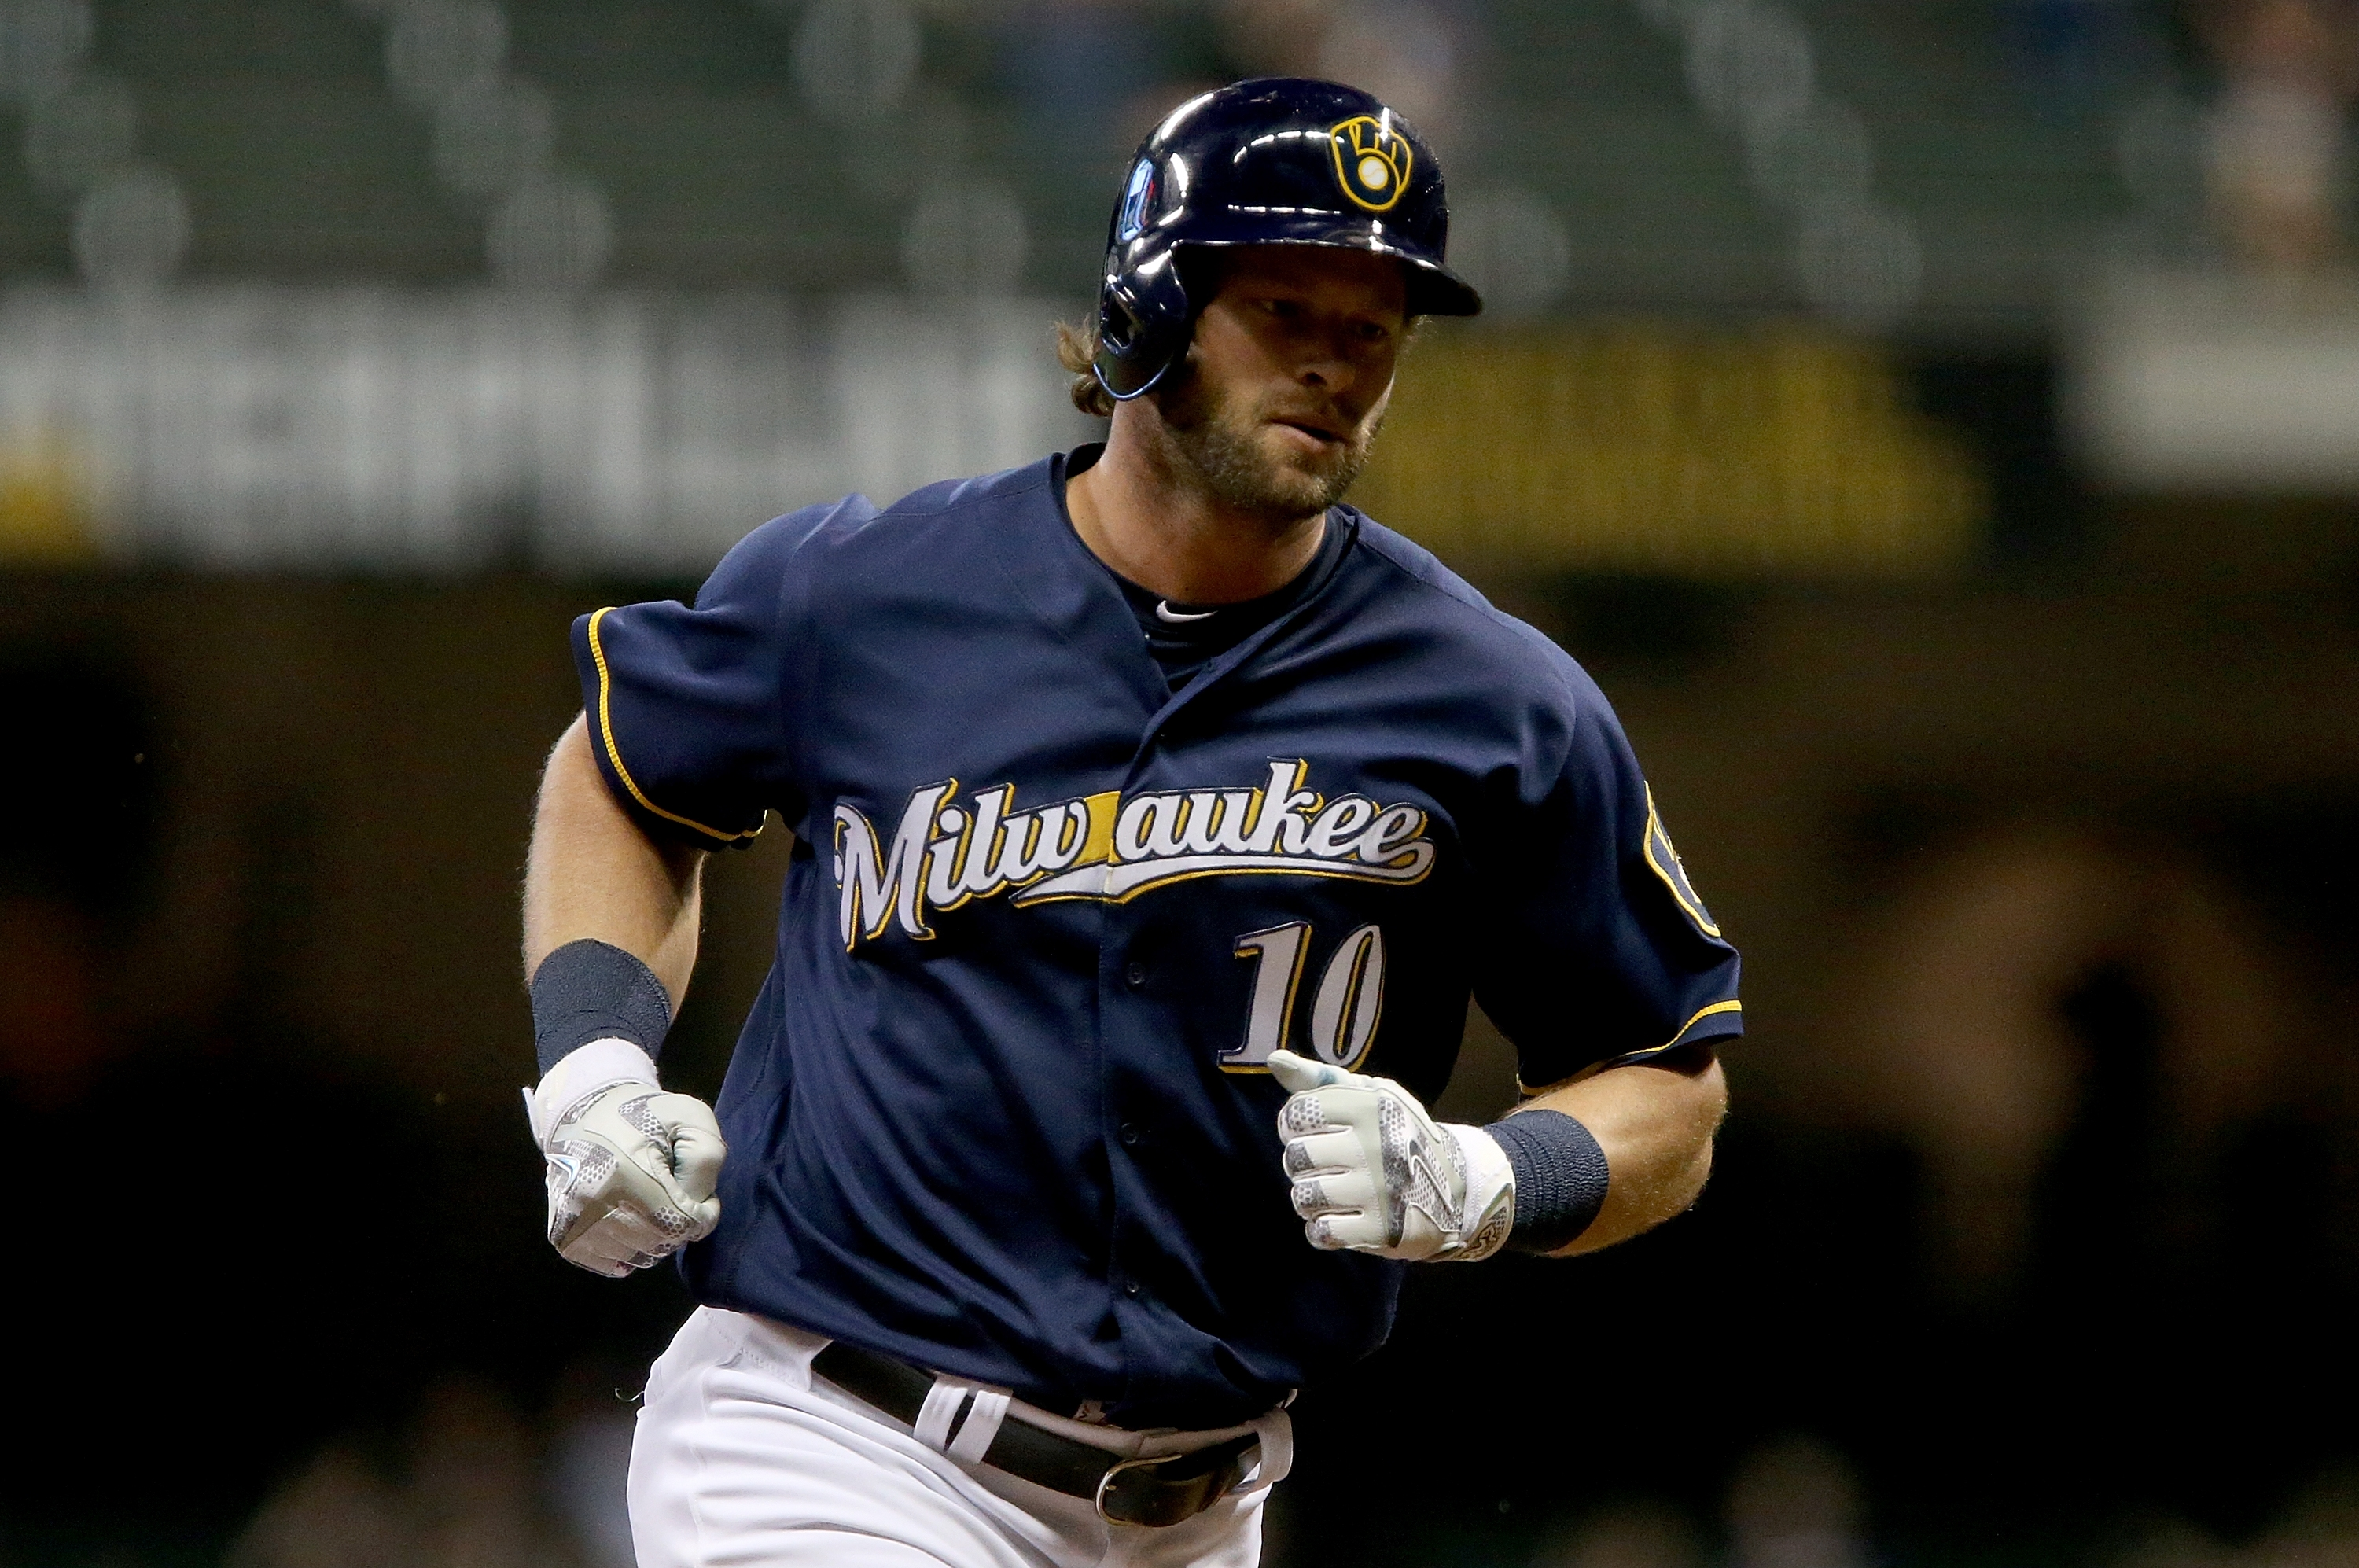 Ex-Bison Kirk Nieuwenhuis blasted his way into the rankings this week.